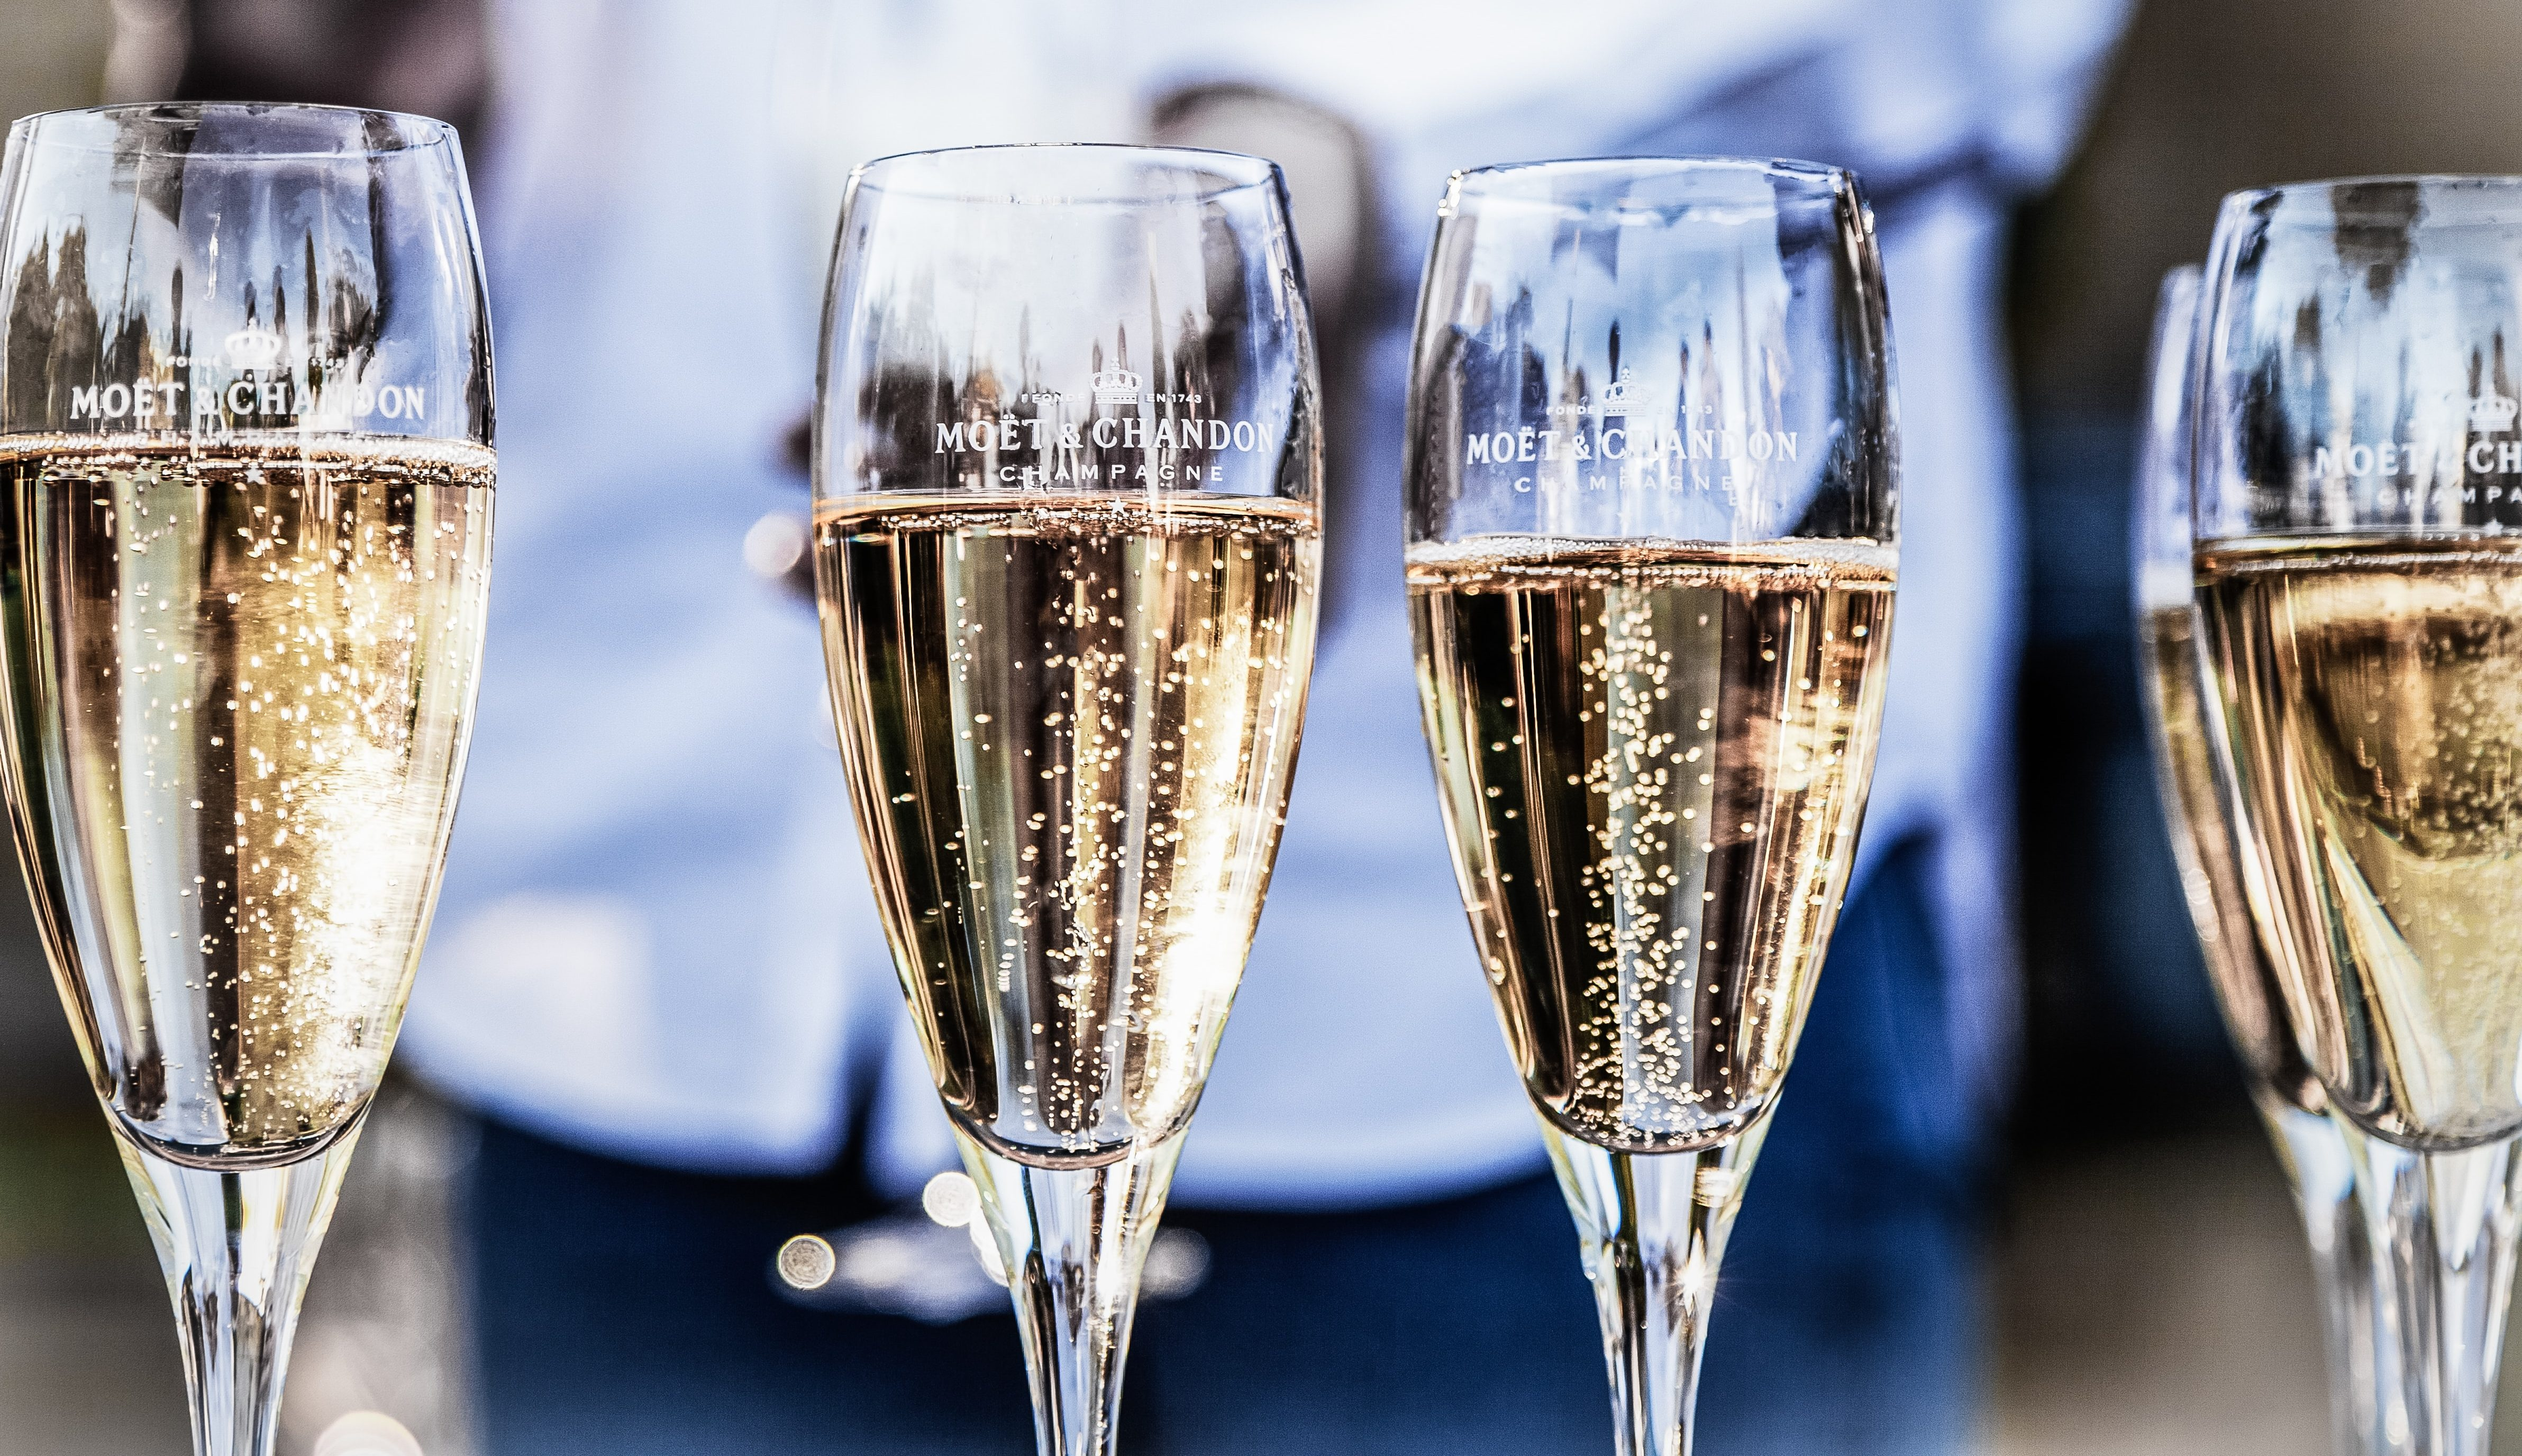 Aldi cuts the price of its prosecco to less than £5 a bottle just in time for Valentine's Day